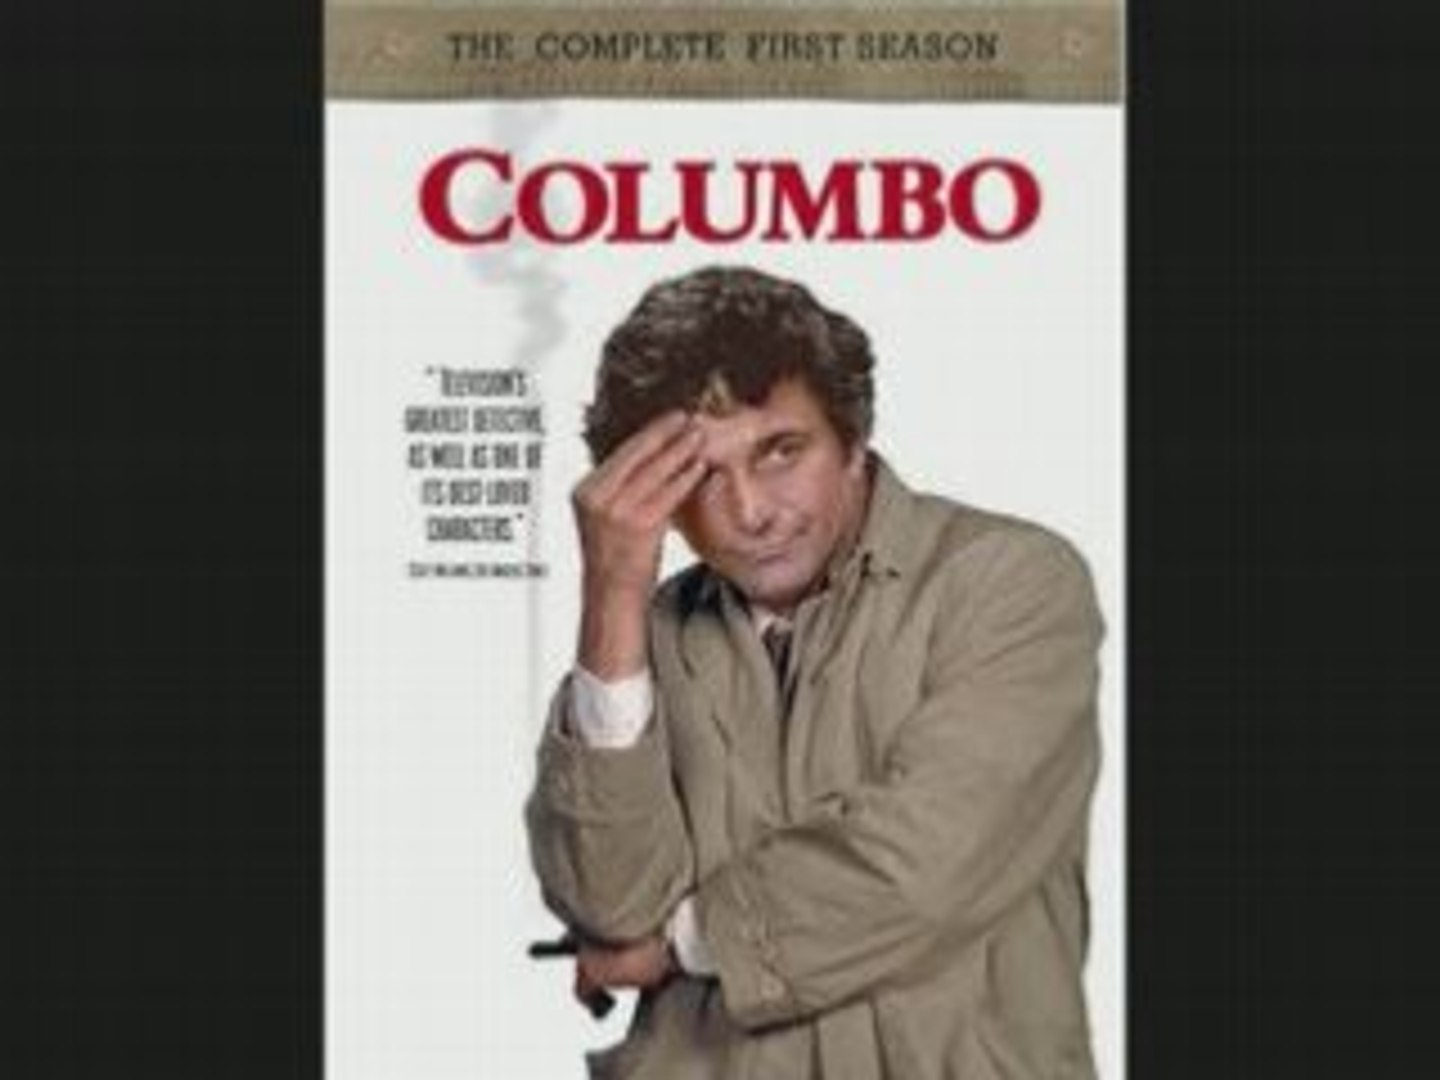 Appel Virtuel 047 - Peter Falk (Columbo)